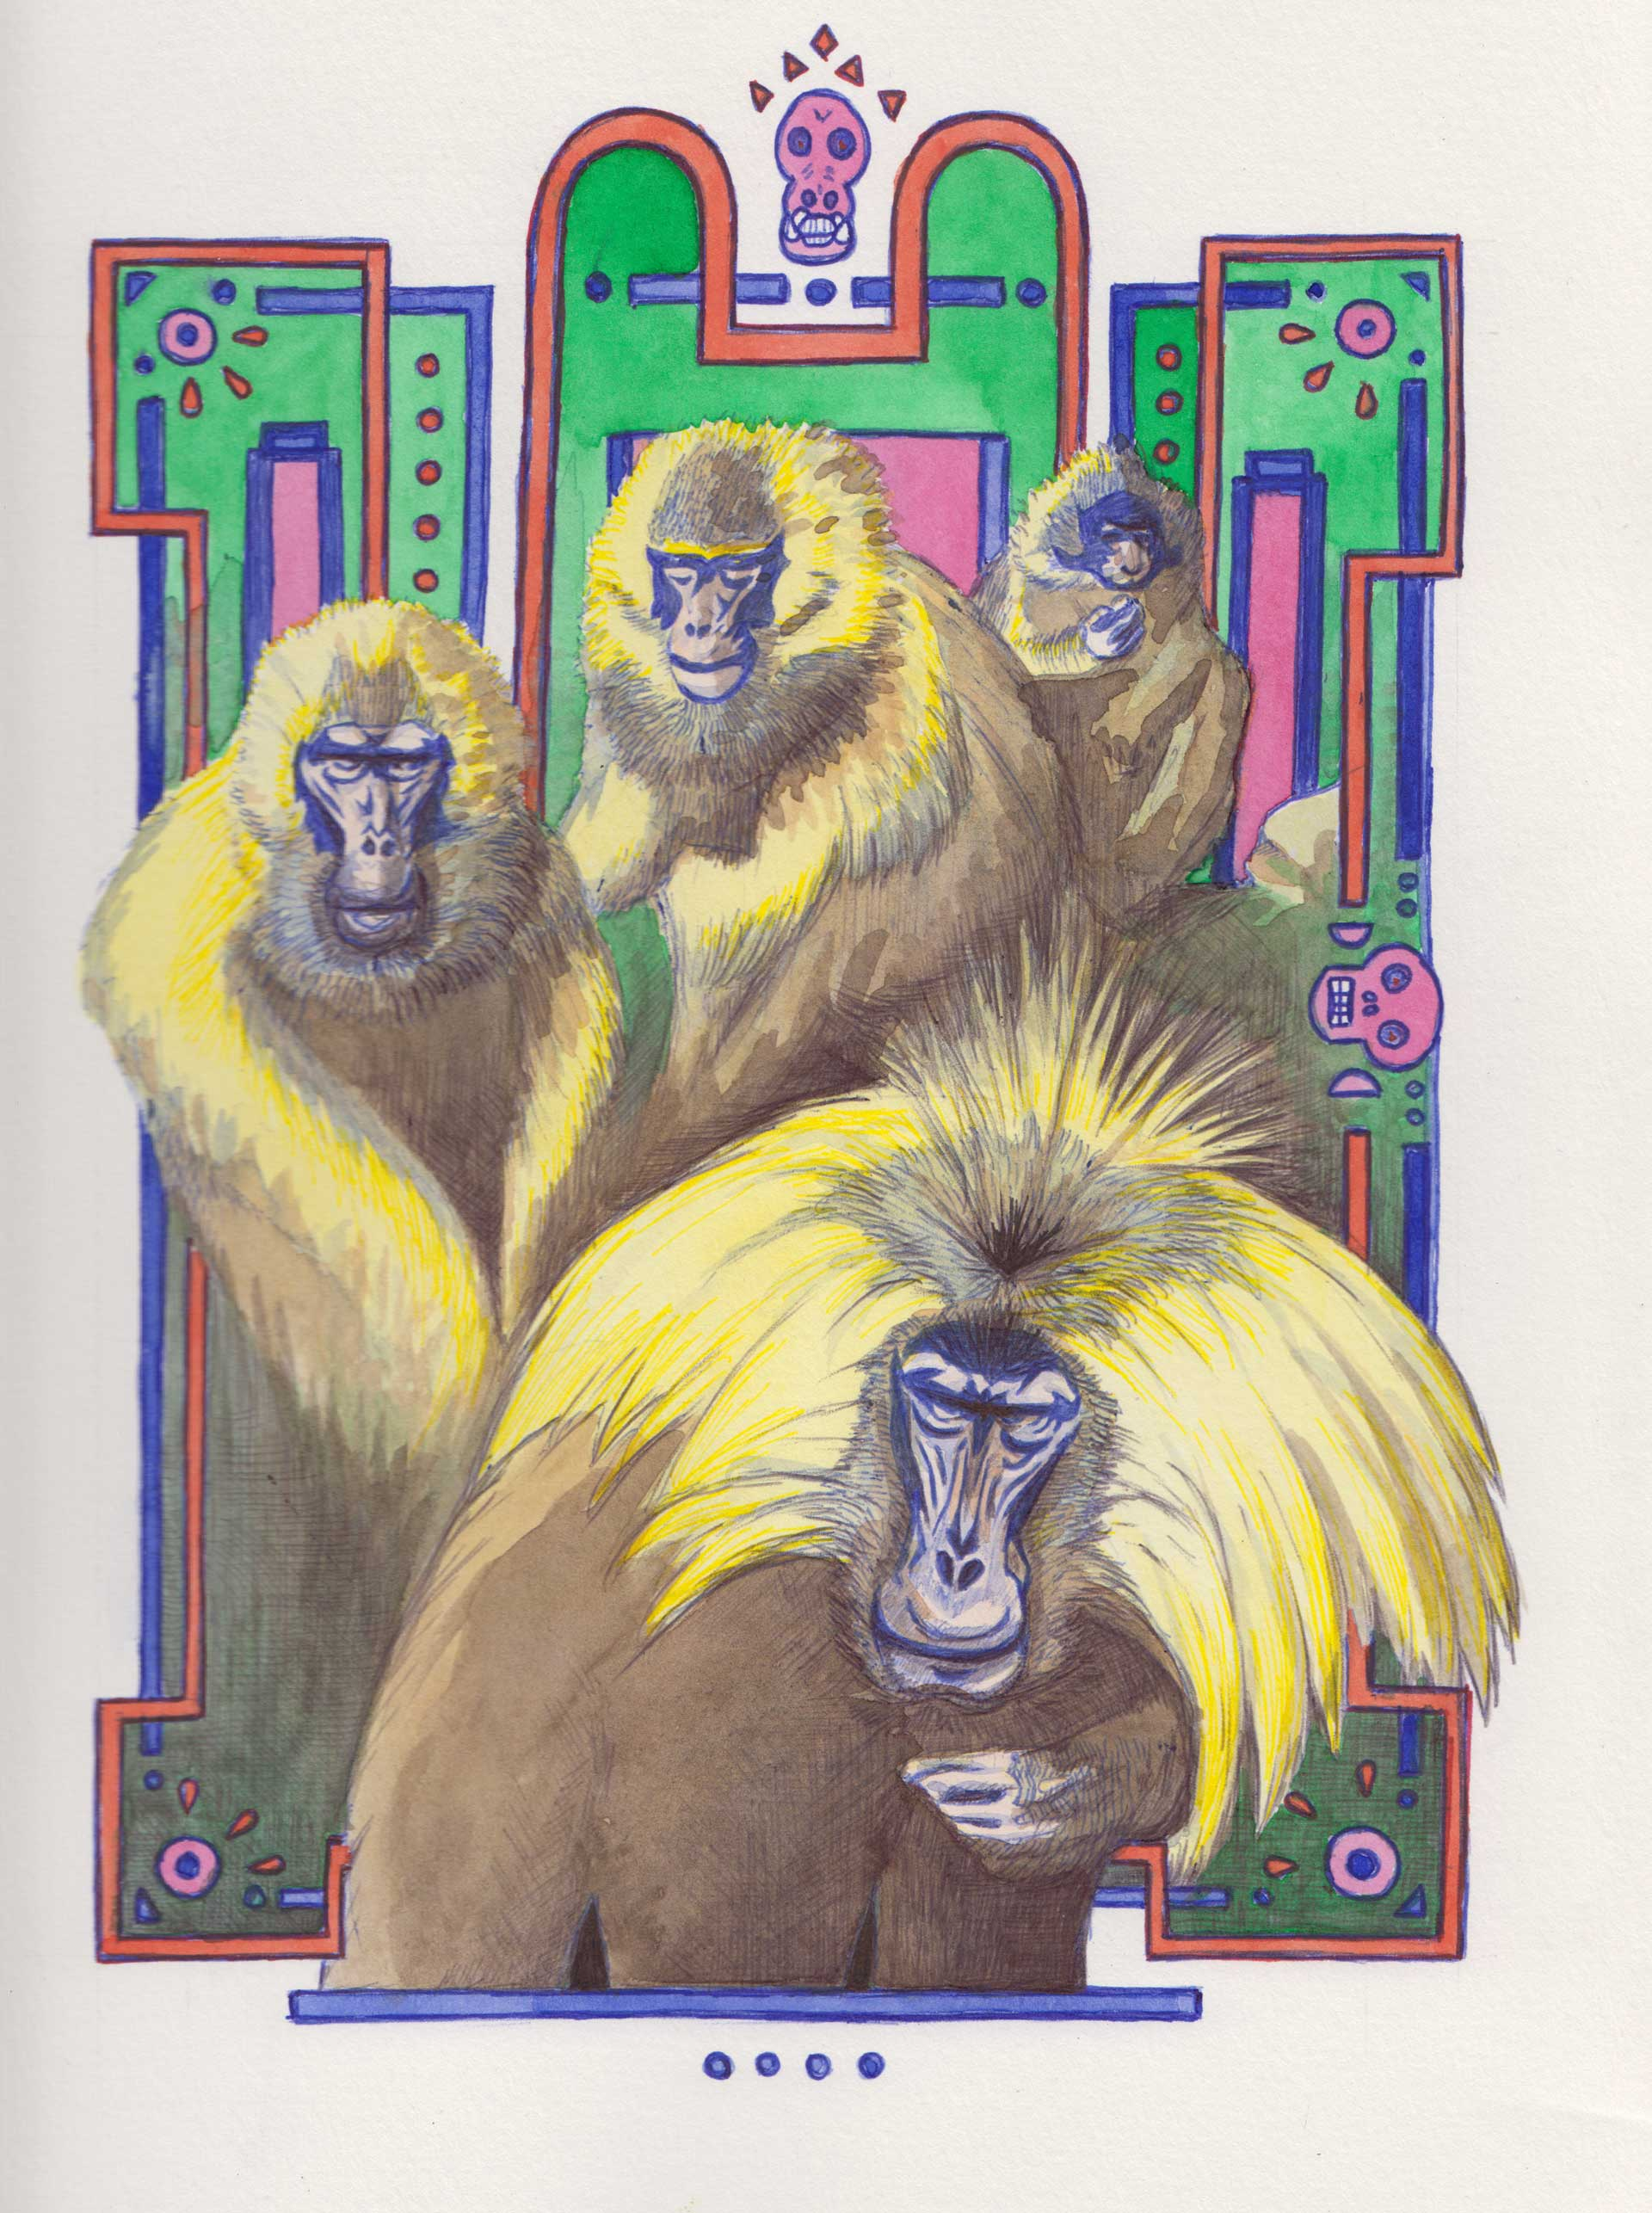 Baboons on an art deco setting, painting by Alessandro Bruno.